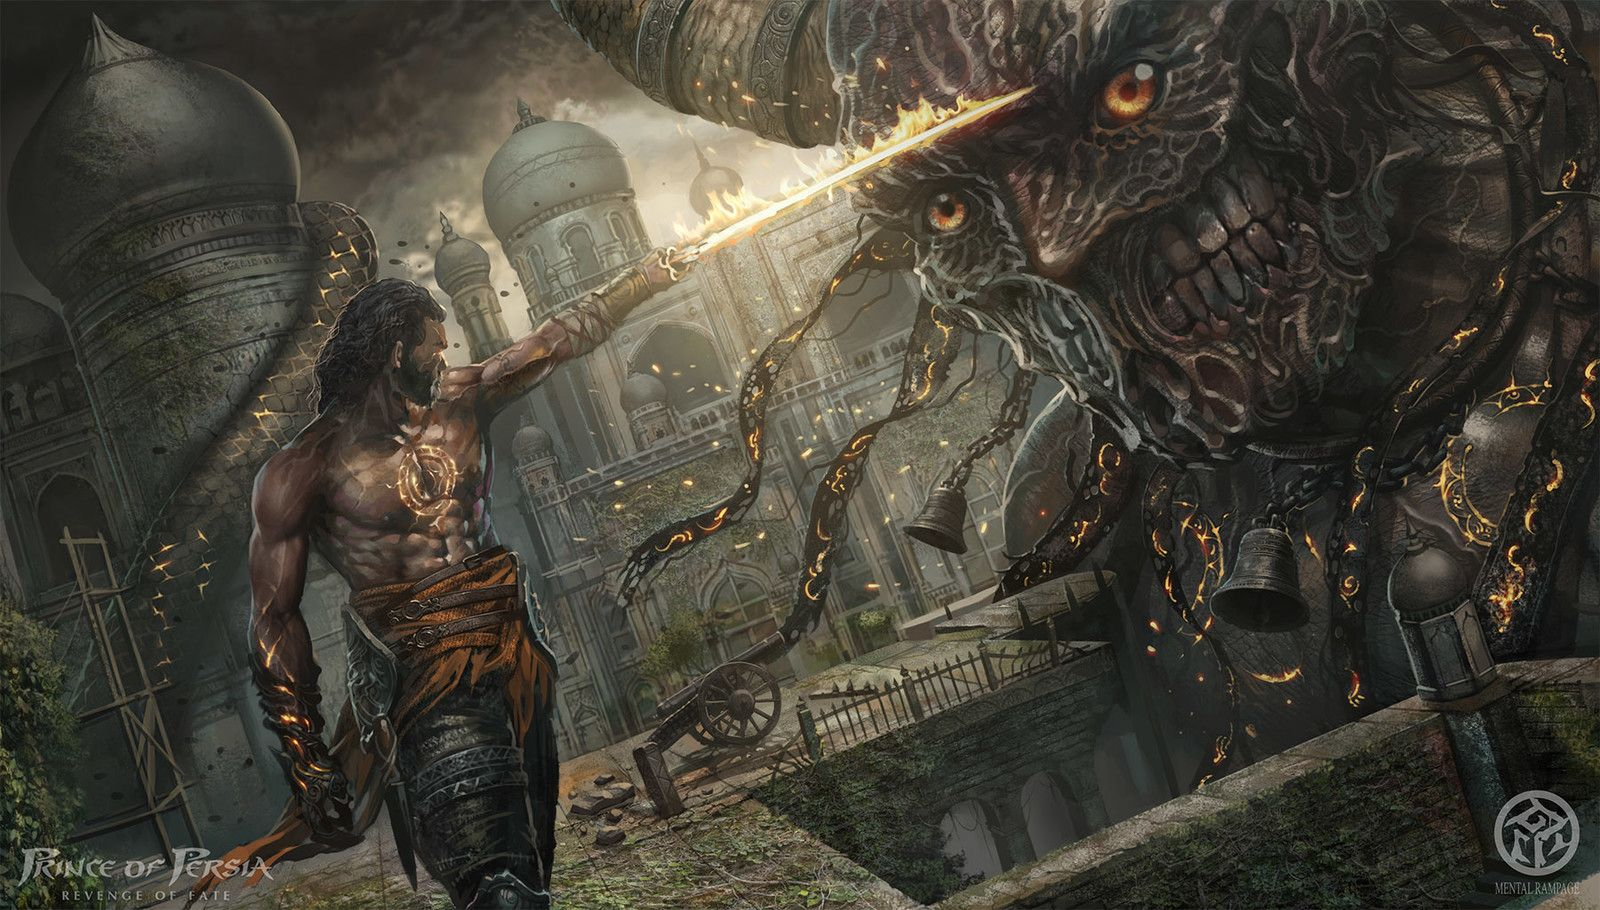 Prince Of Persia Revenge Of Fate Concept 04 Aboy Ningthouja On